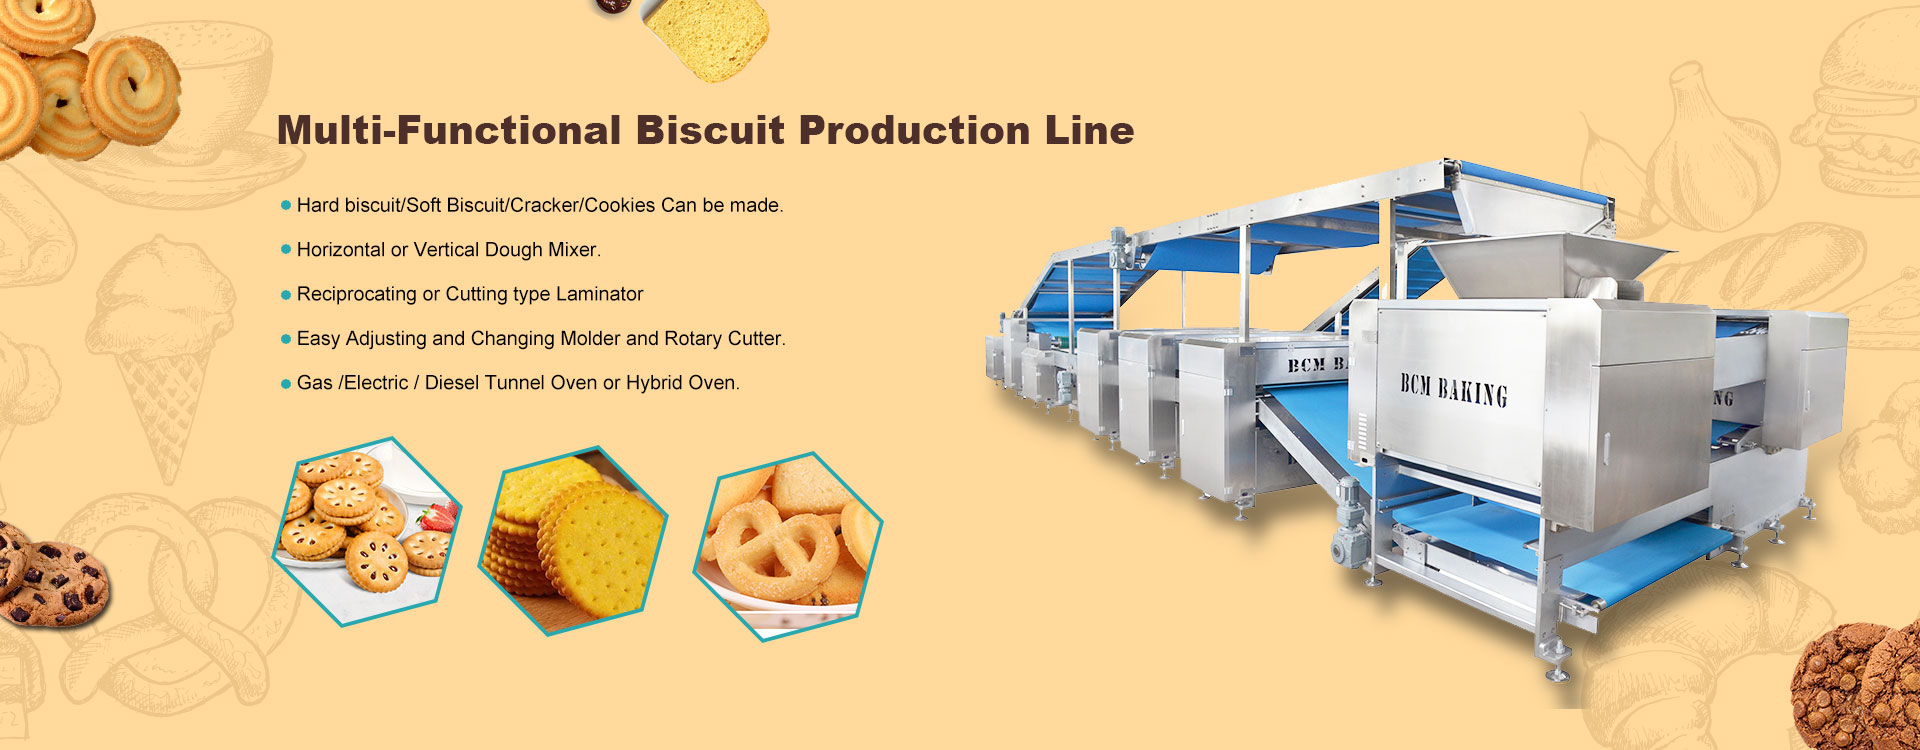 Mulyi-Functional Biscuit Peoduction Line